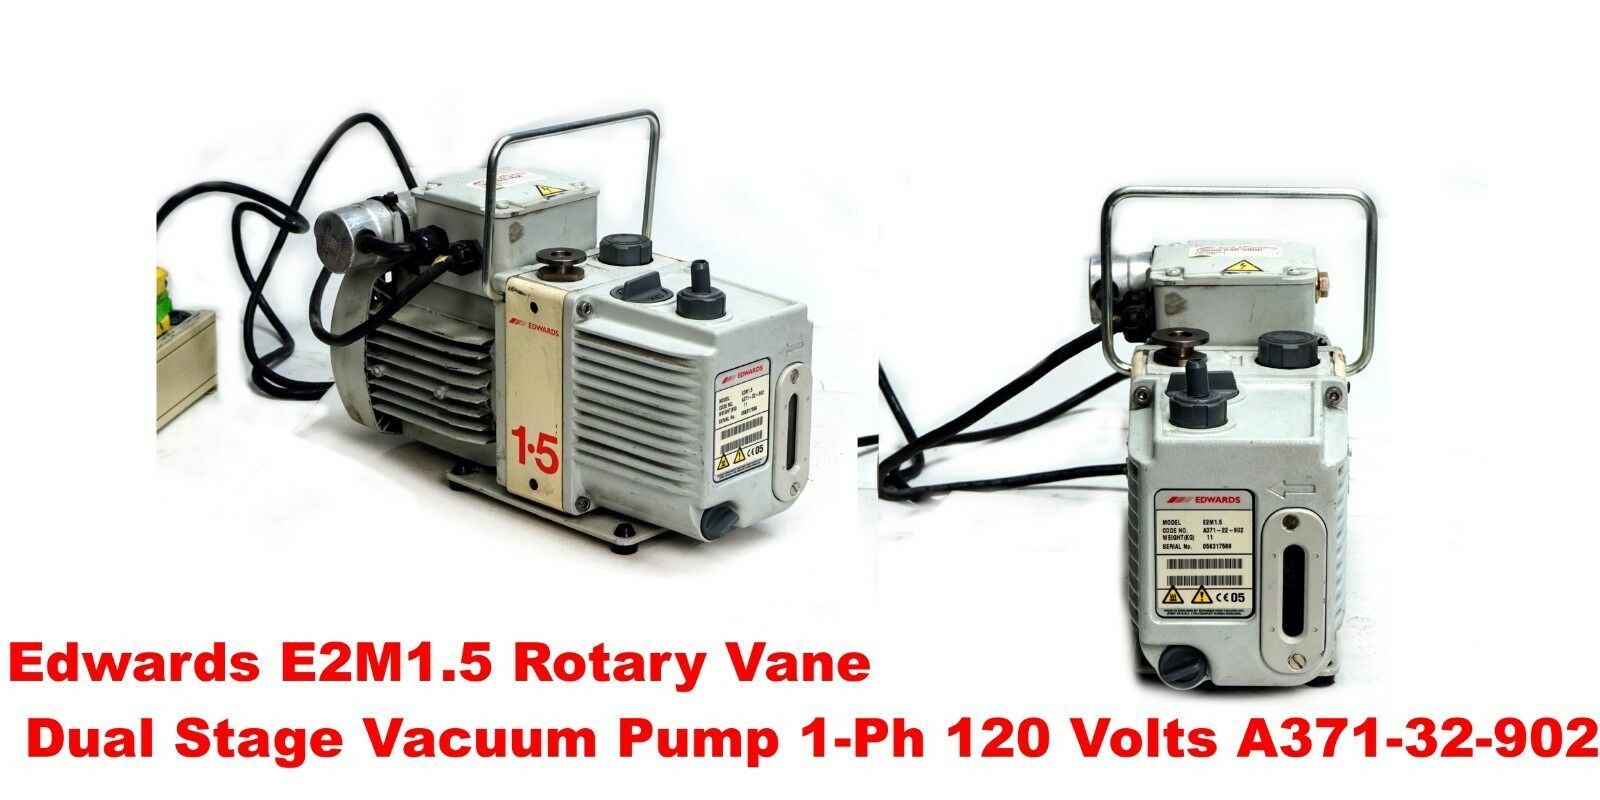 Edwards E2M1.5, Rotary Vane Dual Stage Vacuum Pump